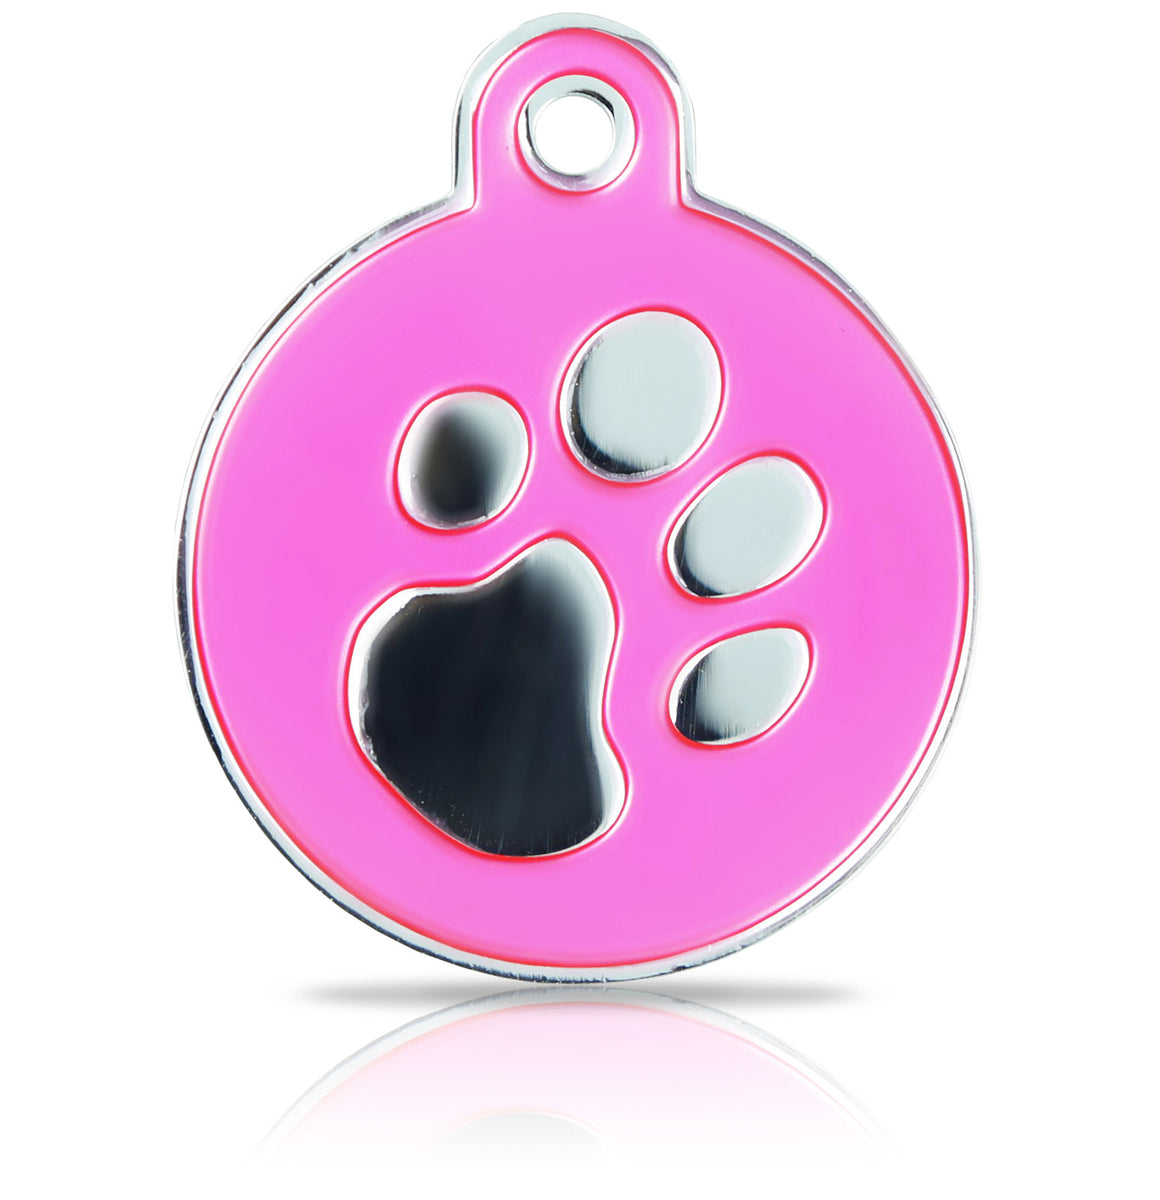 TaggIT Elegance Large Disc Pink & Silver Pet Tag Imarc tag